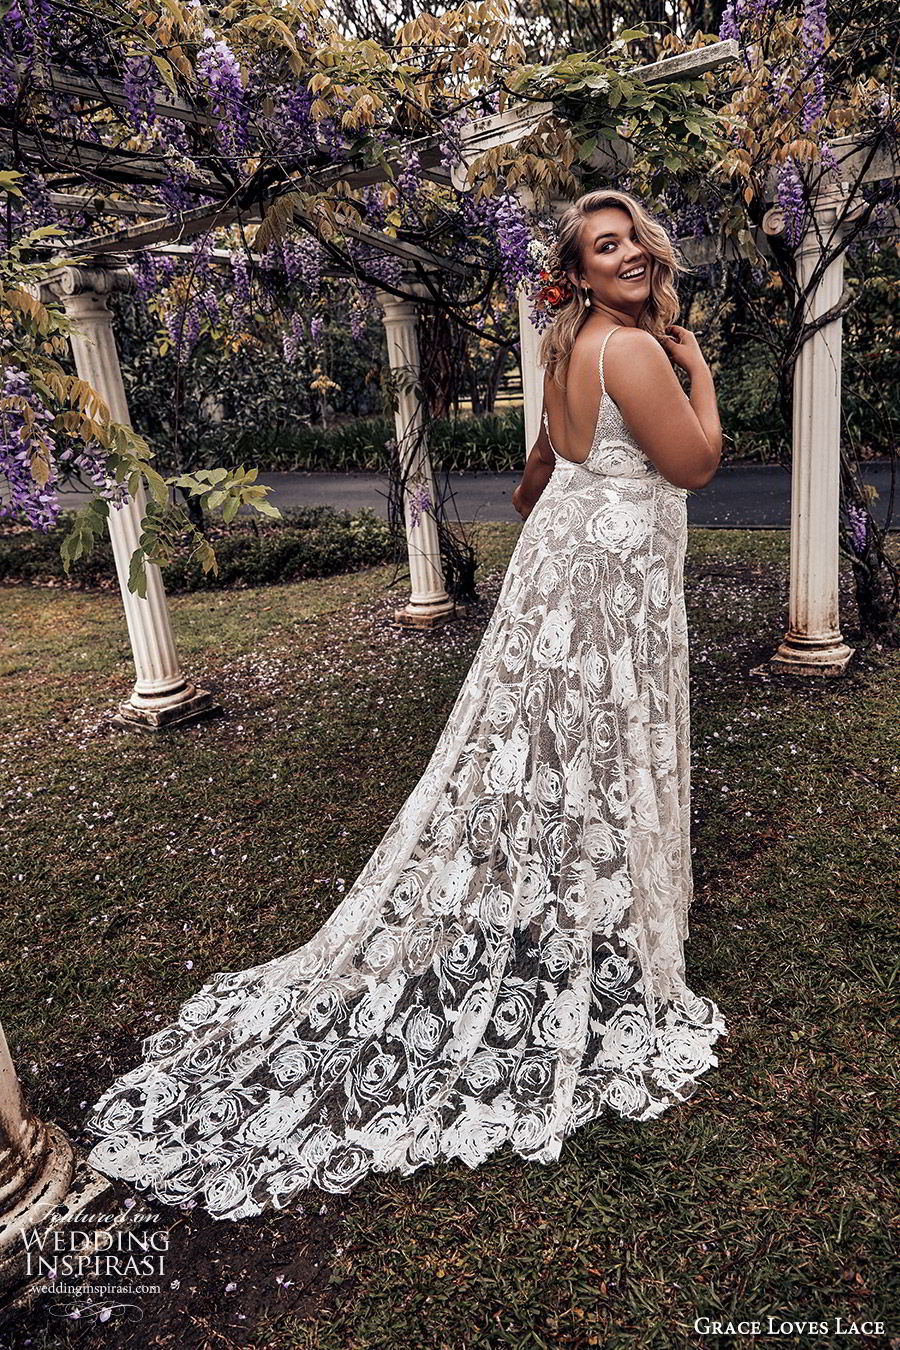 grace loves lace 2019 bridal sleeveless thin straps sweetheart necklines embellished lace soft a line trumpet wedding dress chapel train scoop back plus size bhoho romantic (6) bv